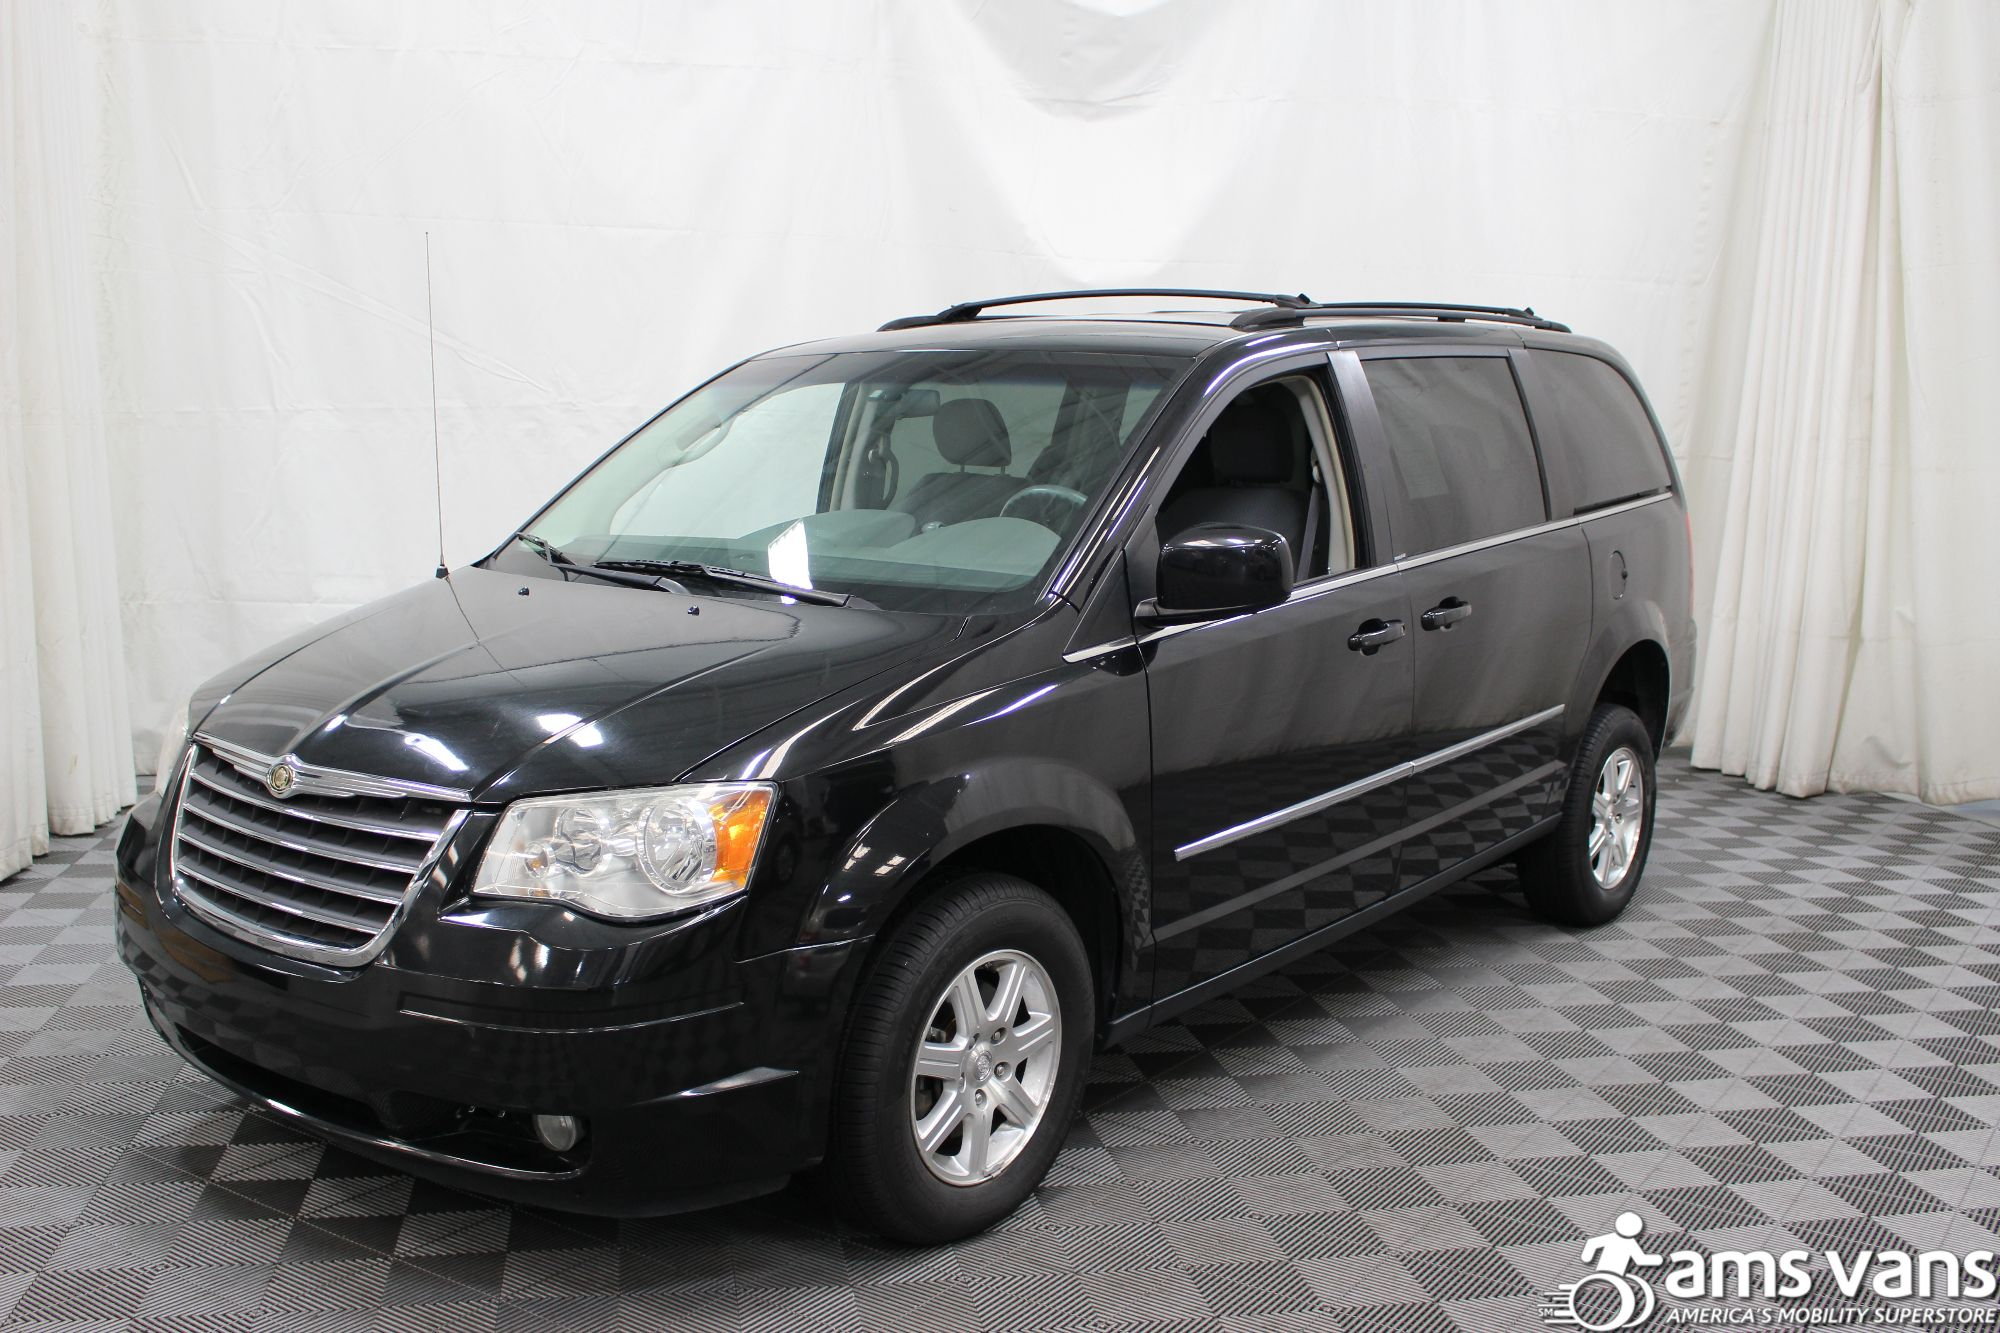 2009 chrysler town and country wheelchair van for sale 23 995. Black Bedroom Furniture Sets. Home Design Ideas